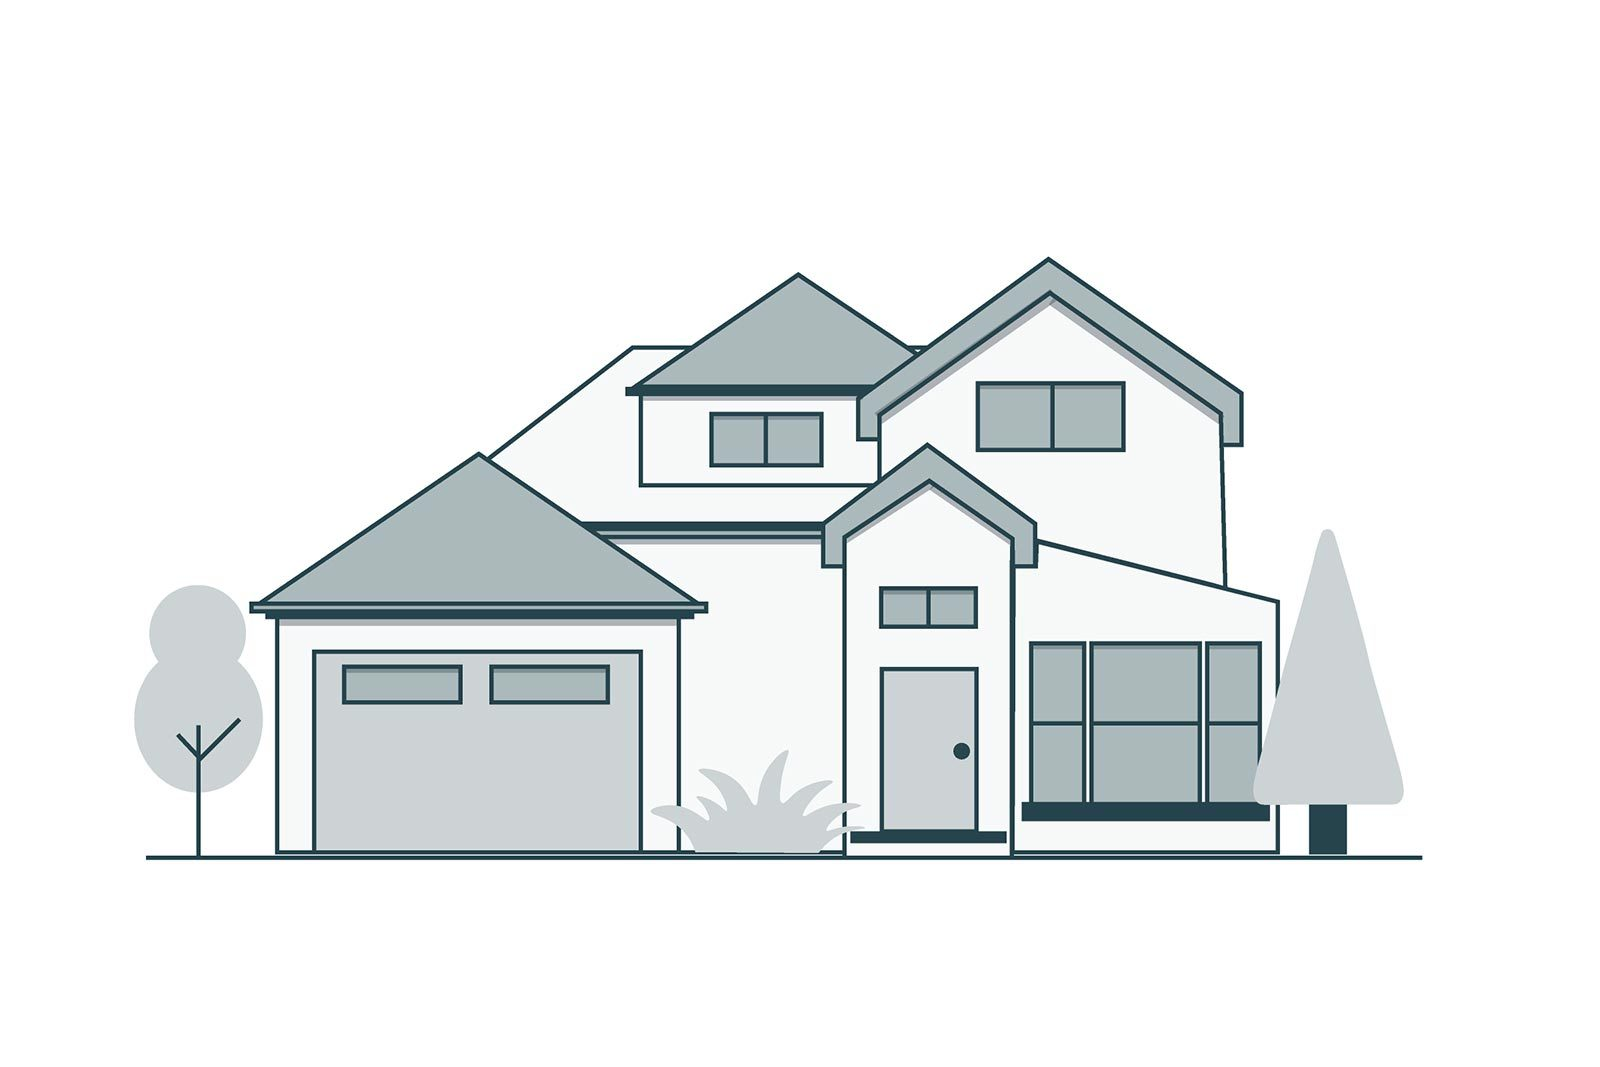 1471 19th Avenue Unit 4 San Francisco, CA 94122